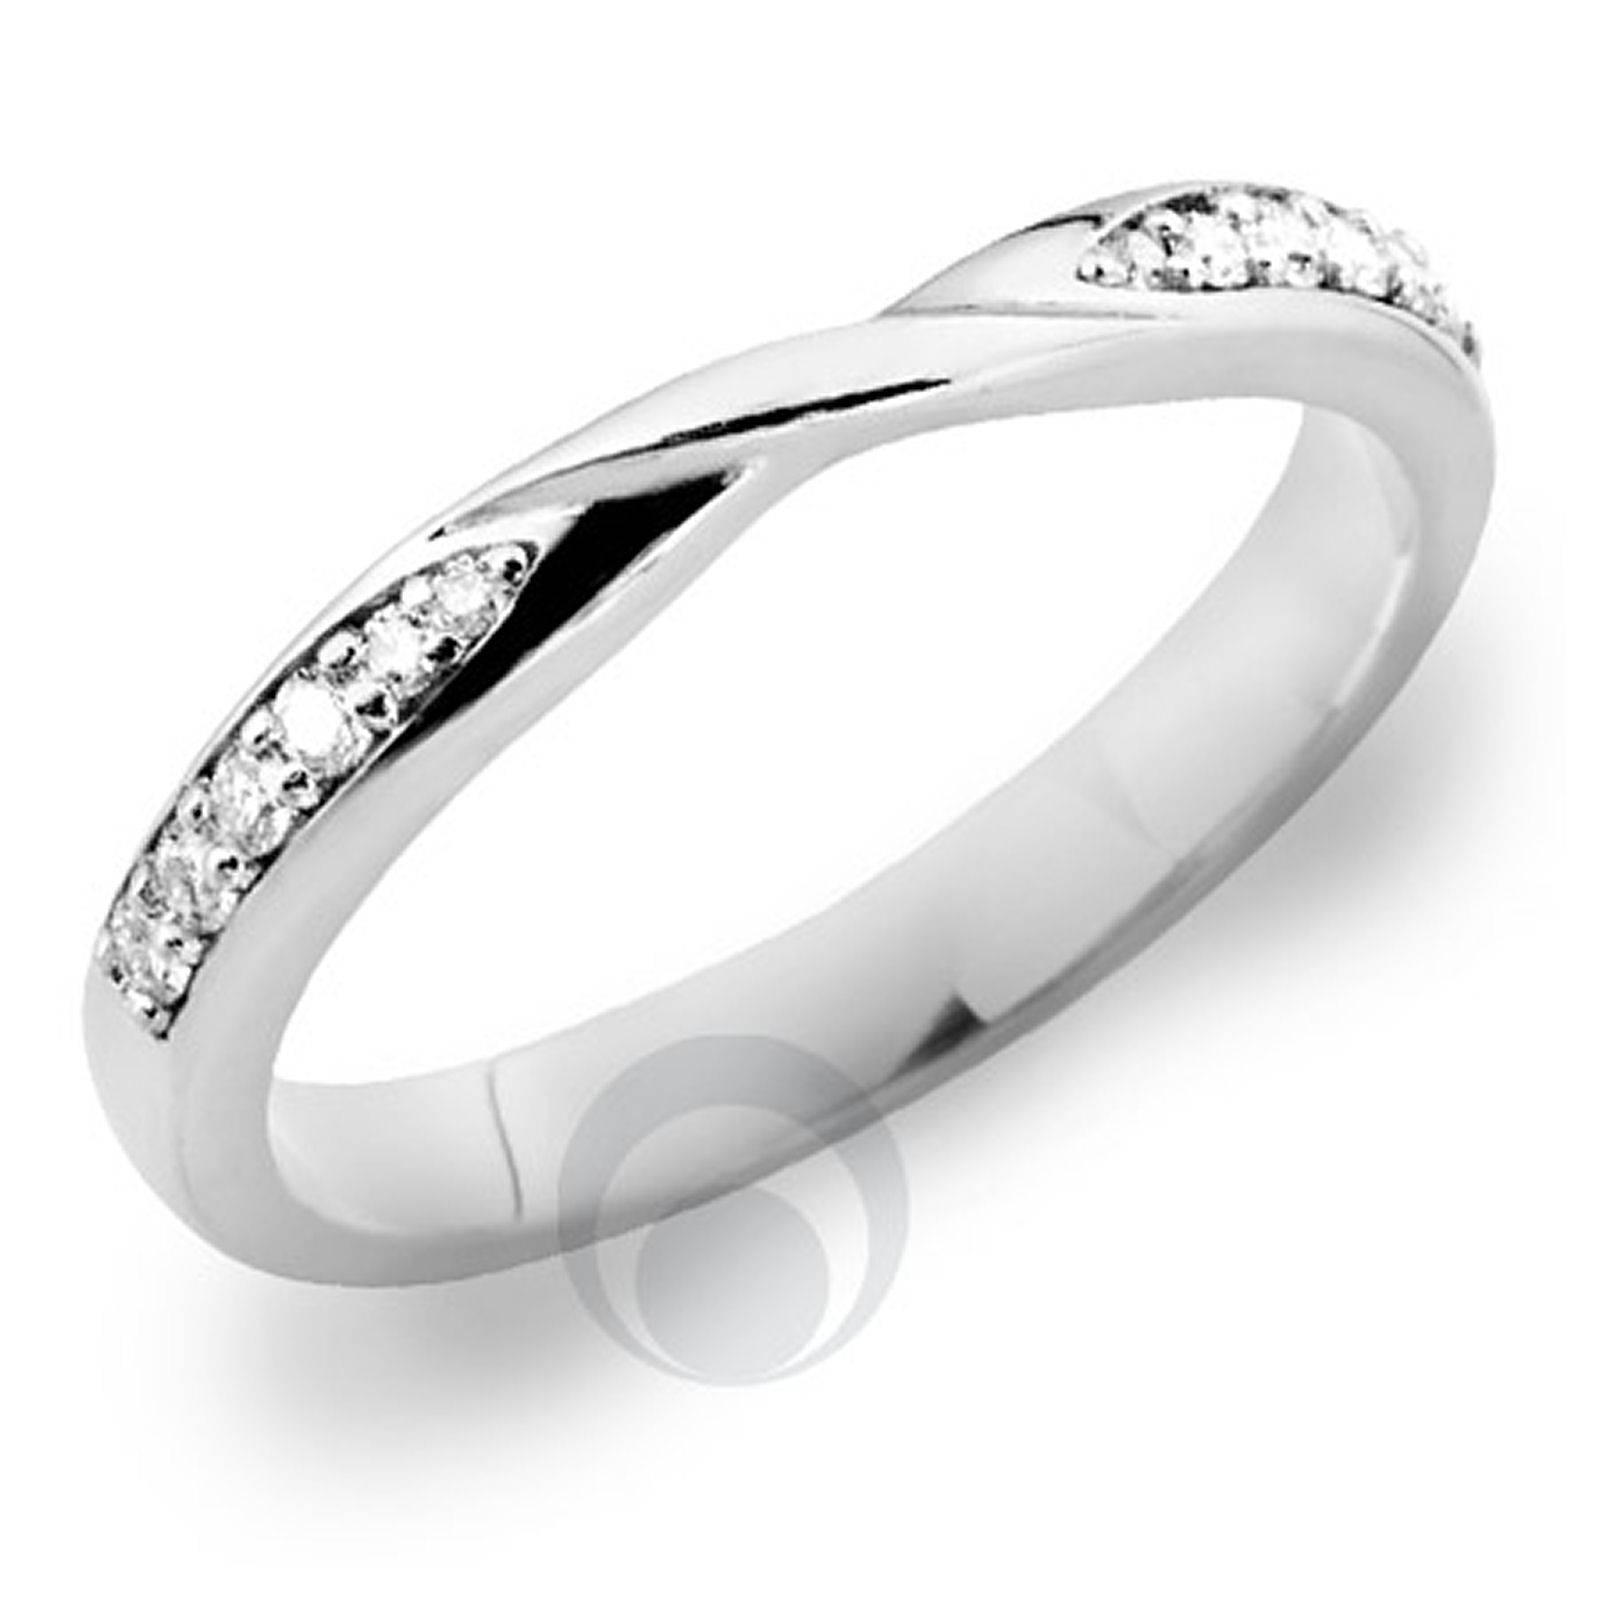 Cost Of Platinum Ring Tags : Platinum Mens Wedding Ring Mens In Platinum Wedding Rings For Women (View 3 of 15)